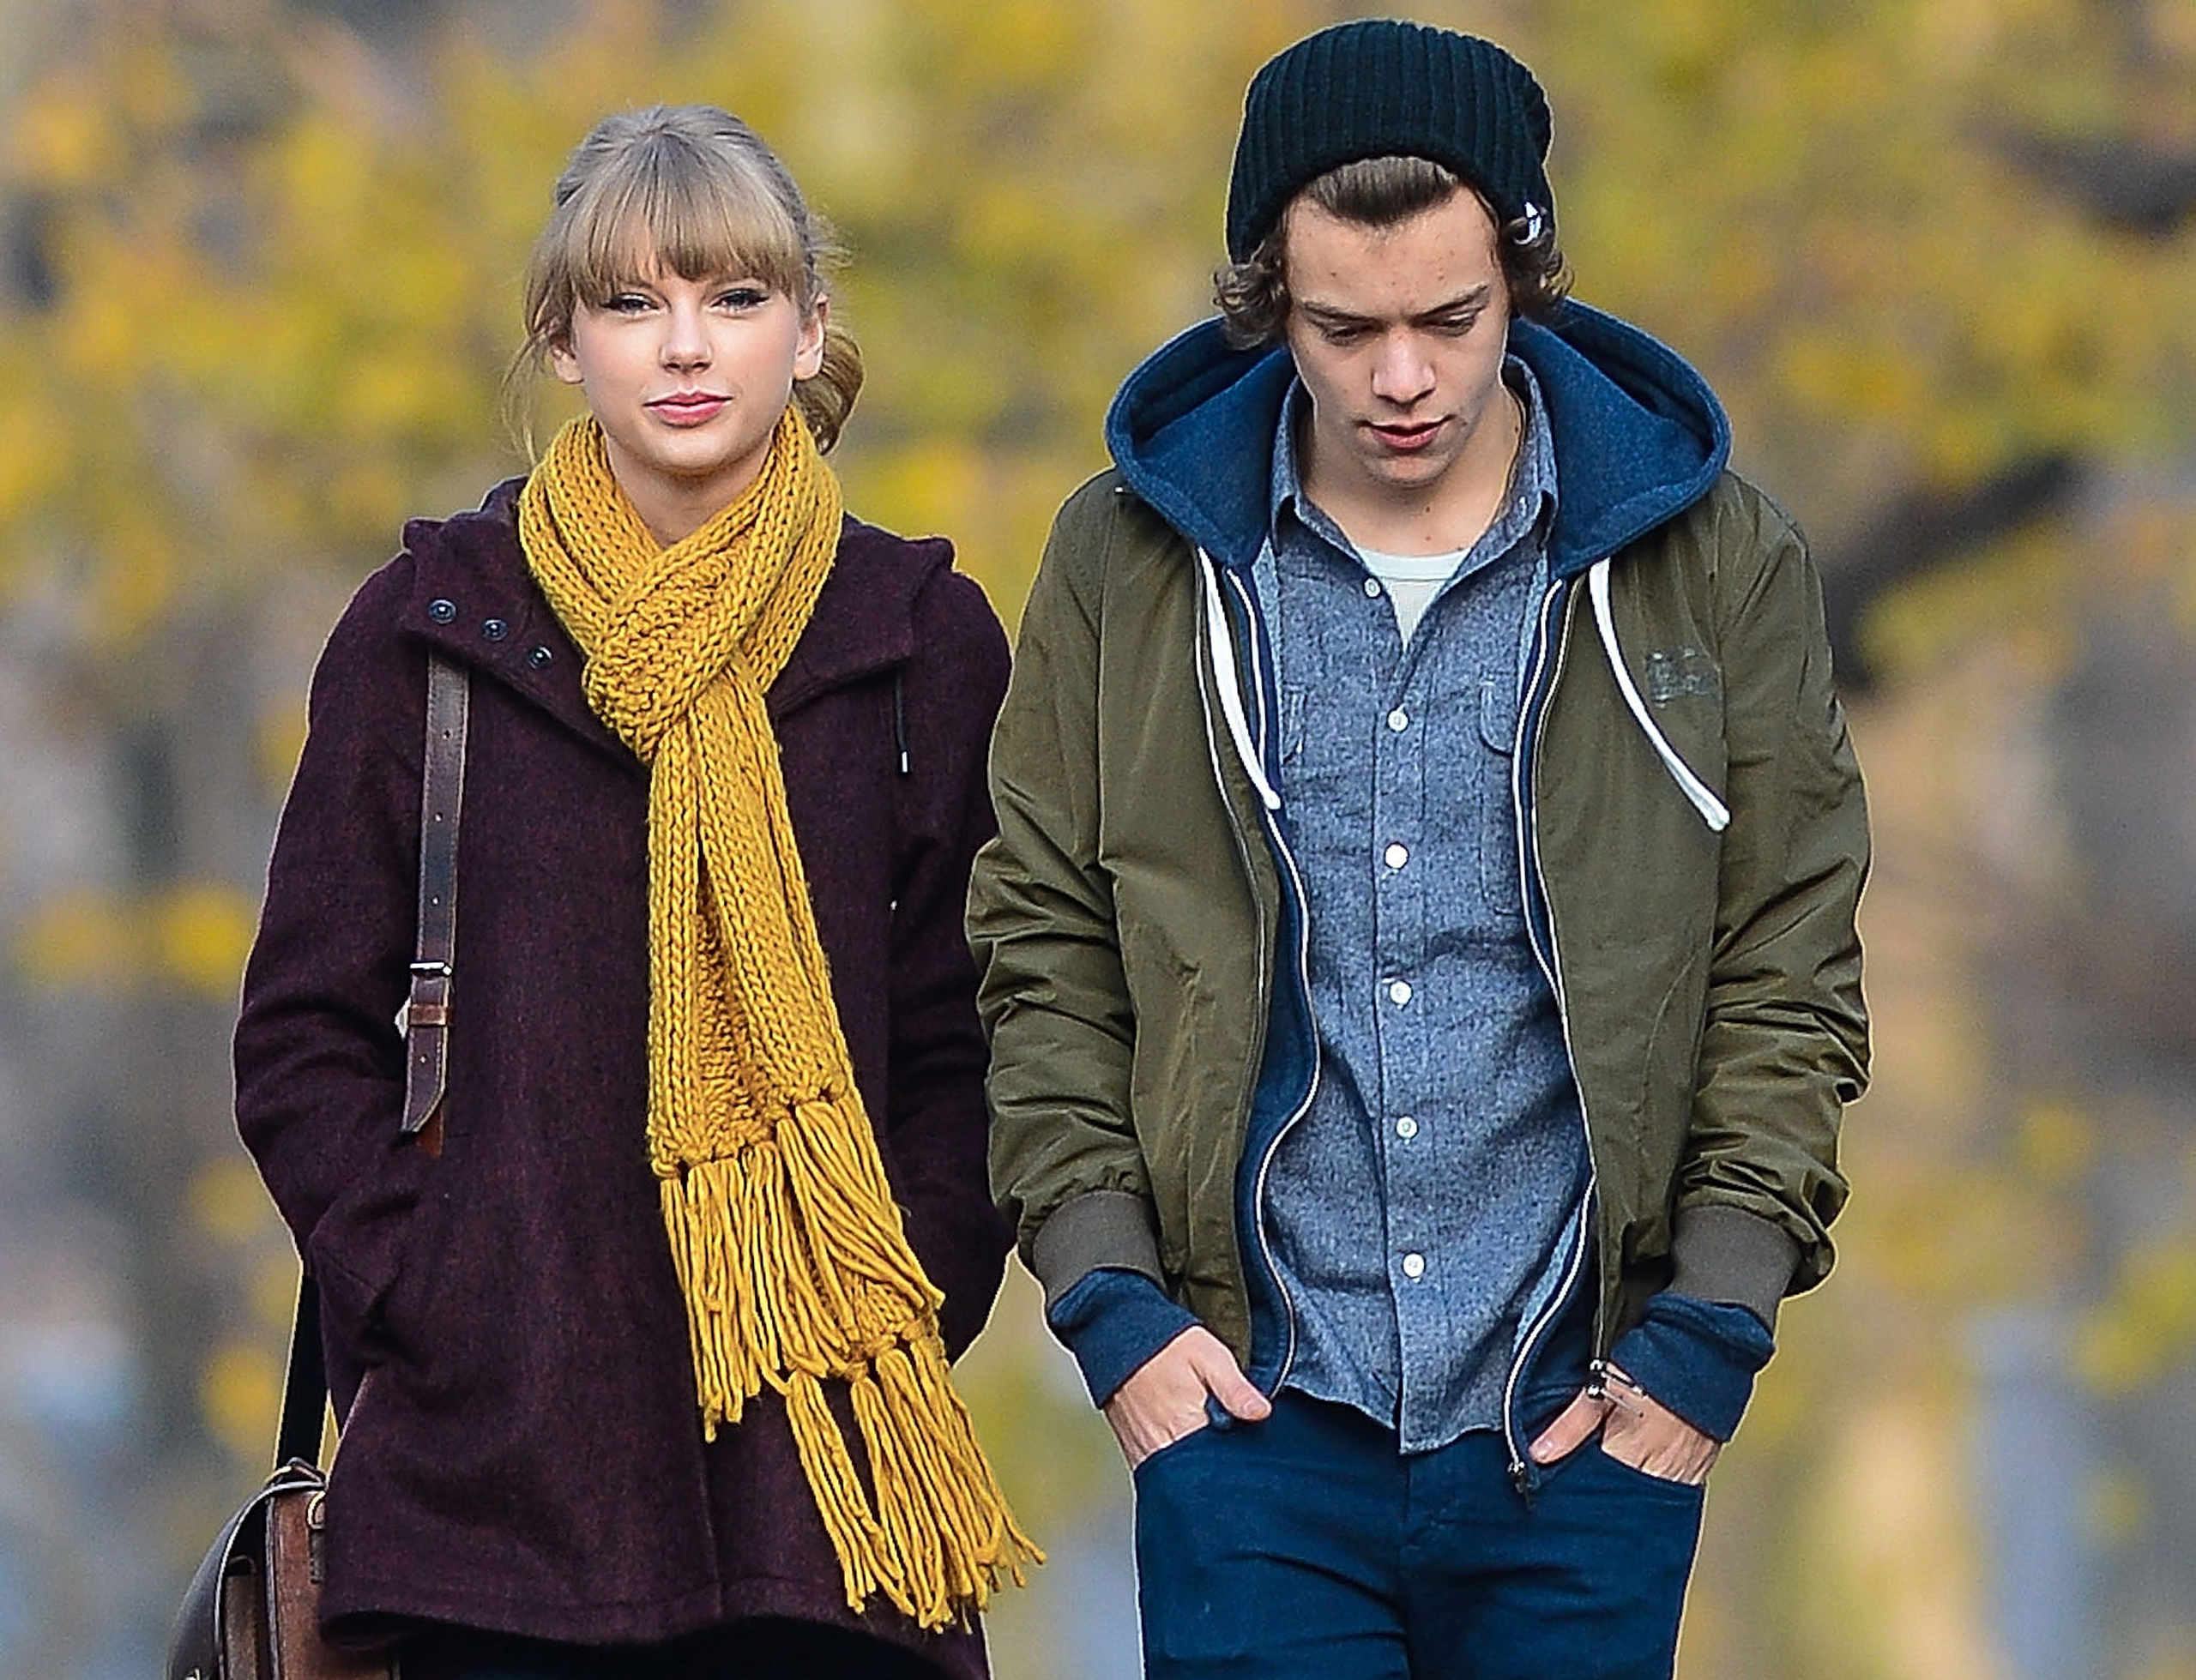 Taylor Swift and Harry Styles are seen walking around Central Park in New York on Dec.02, 2012.